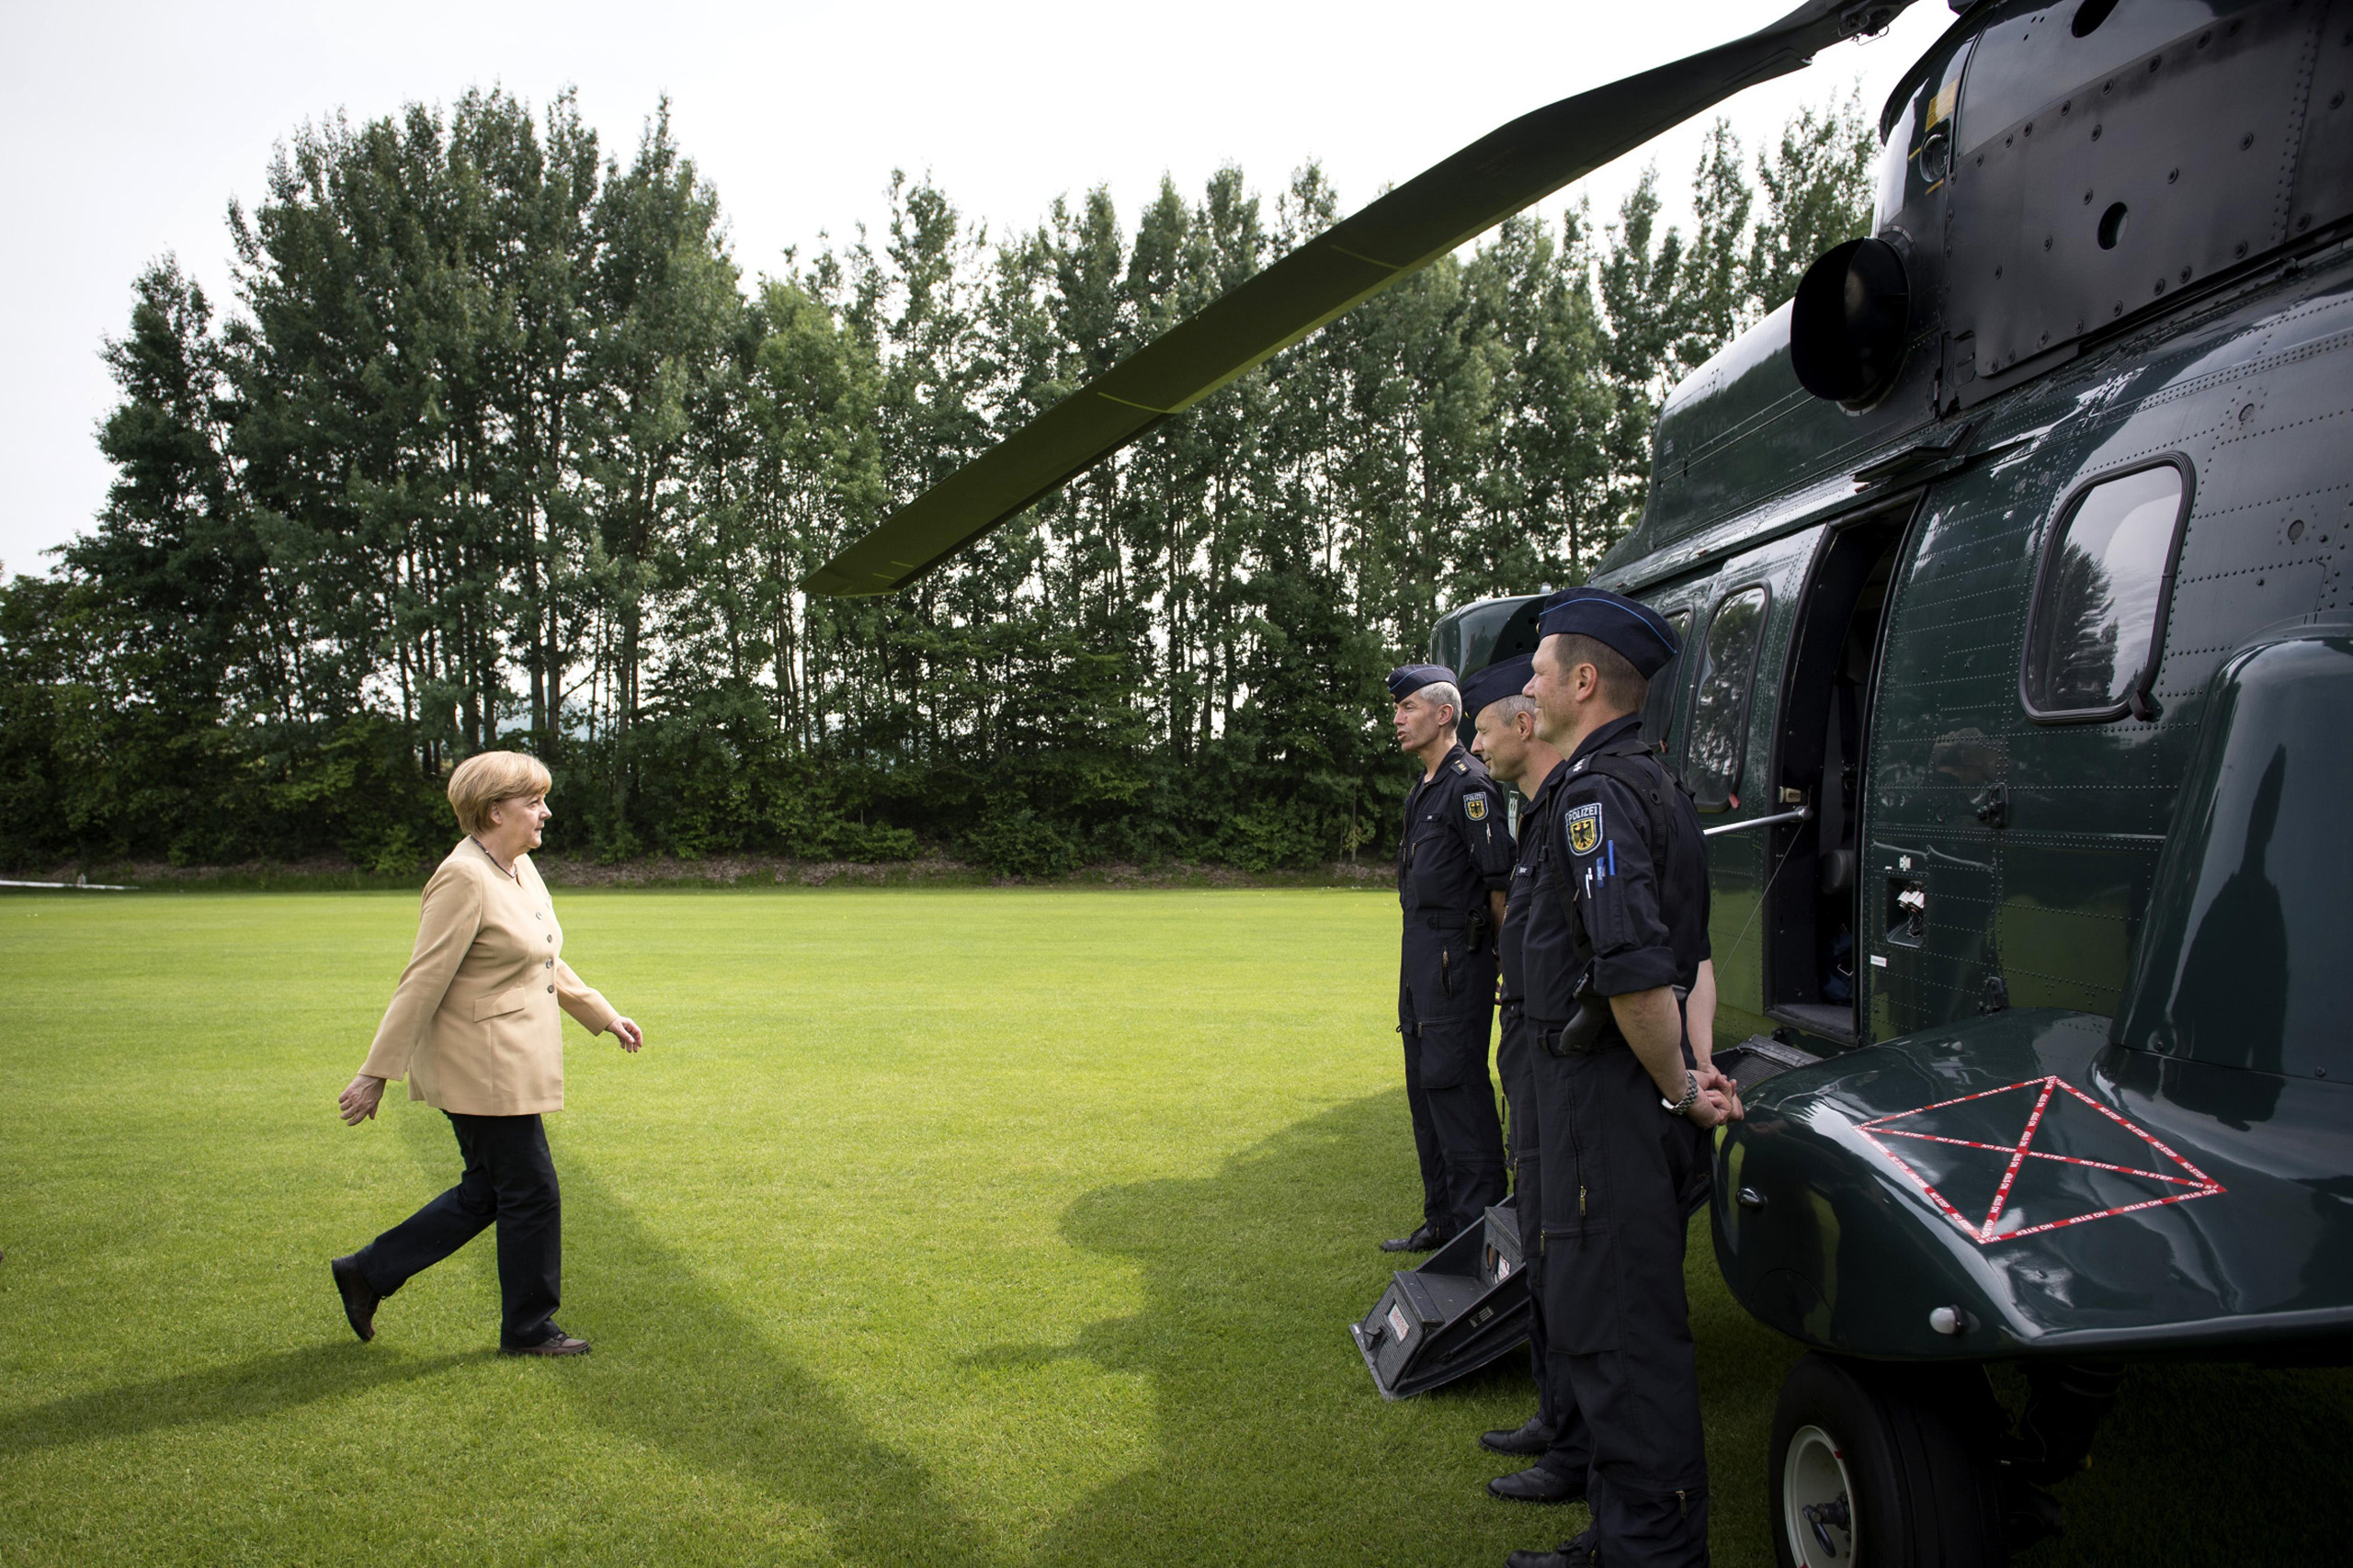 Chancellor Angela Merkel about to board a police helicopter after visiting the region of Hitzacker, Lower Saxony, which was hit by severe flooding. June 12, 2013.